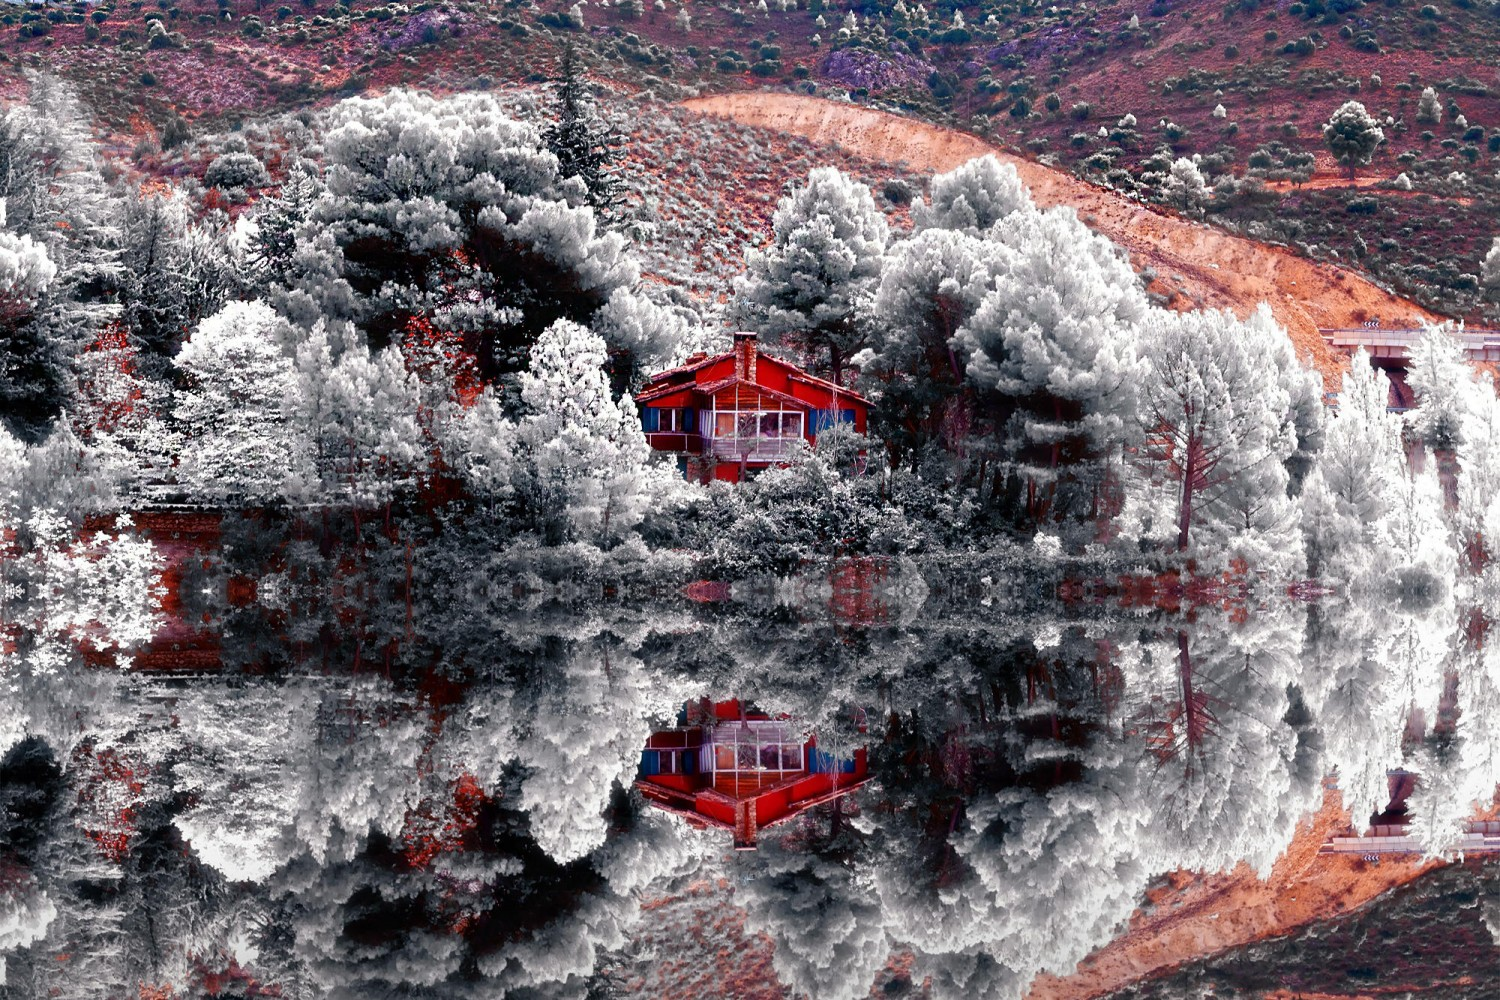 Tutorial: How To Transform Your Landscape Photos Into Surreal Infrared Images